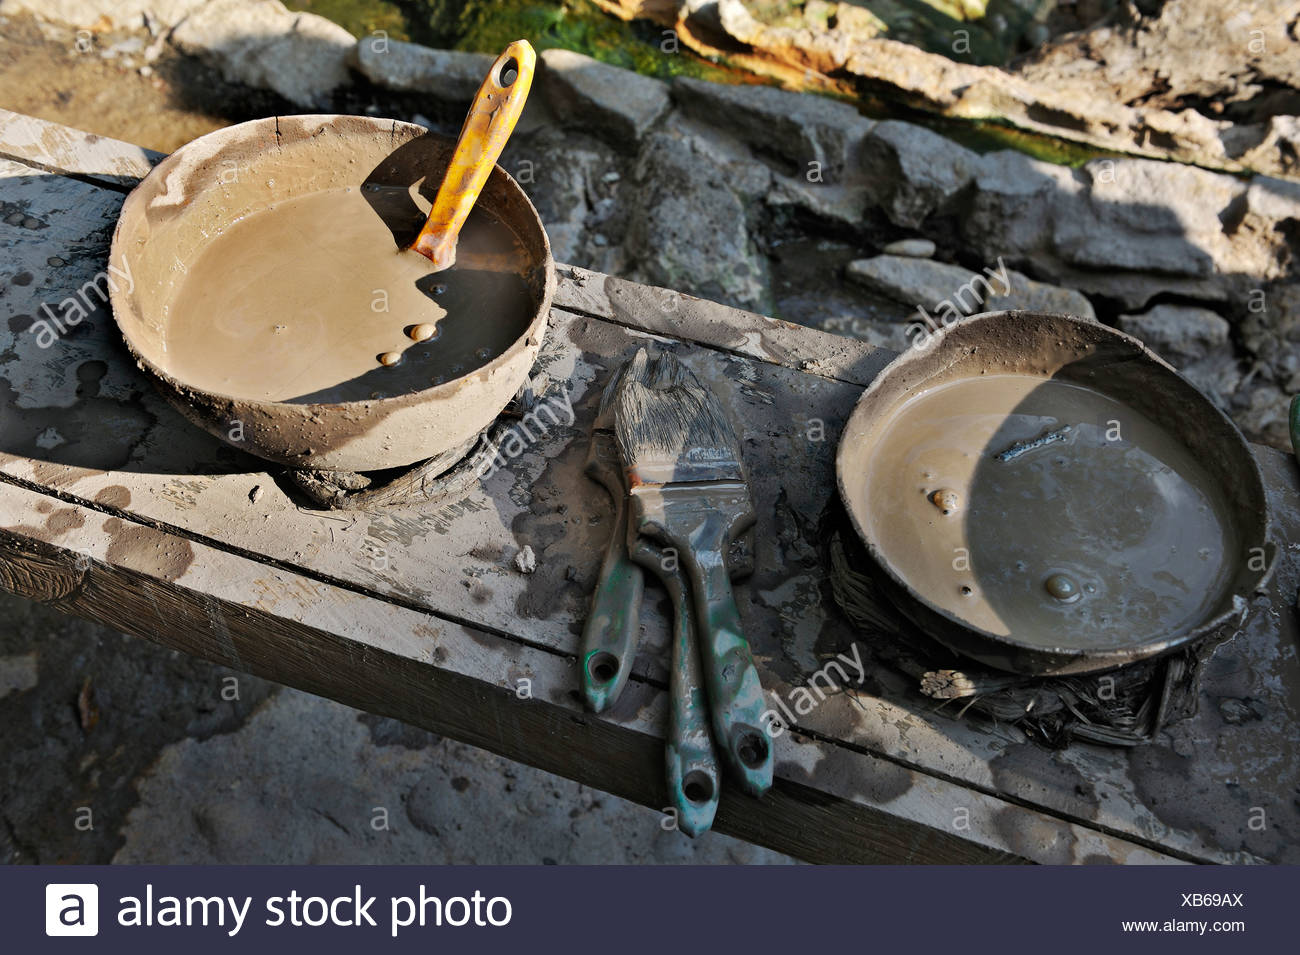 Healing mud in bowls with brushes near the hot springs, near the Hacienda Guachipelin, near Liberia, Guanacaste province - Stock Image